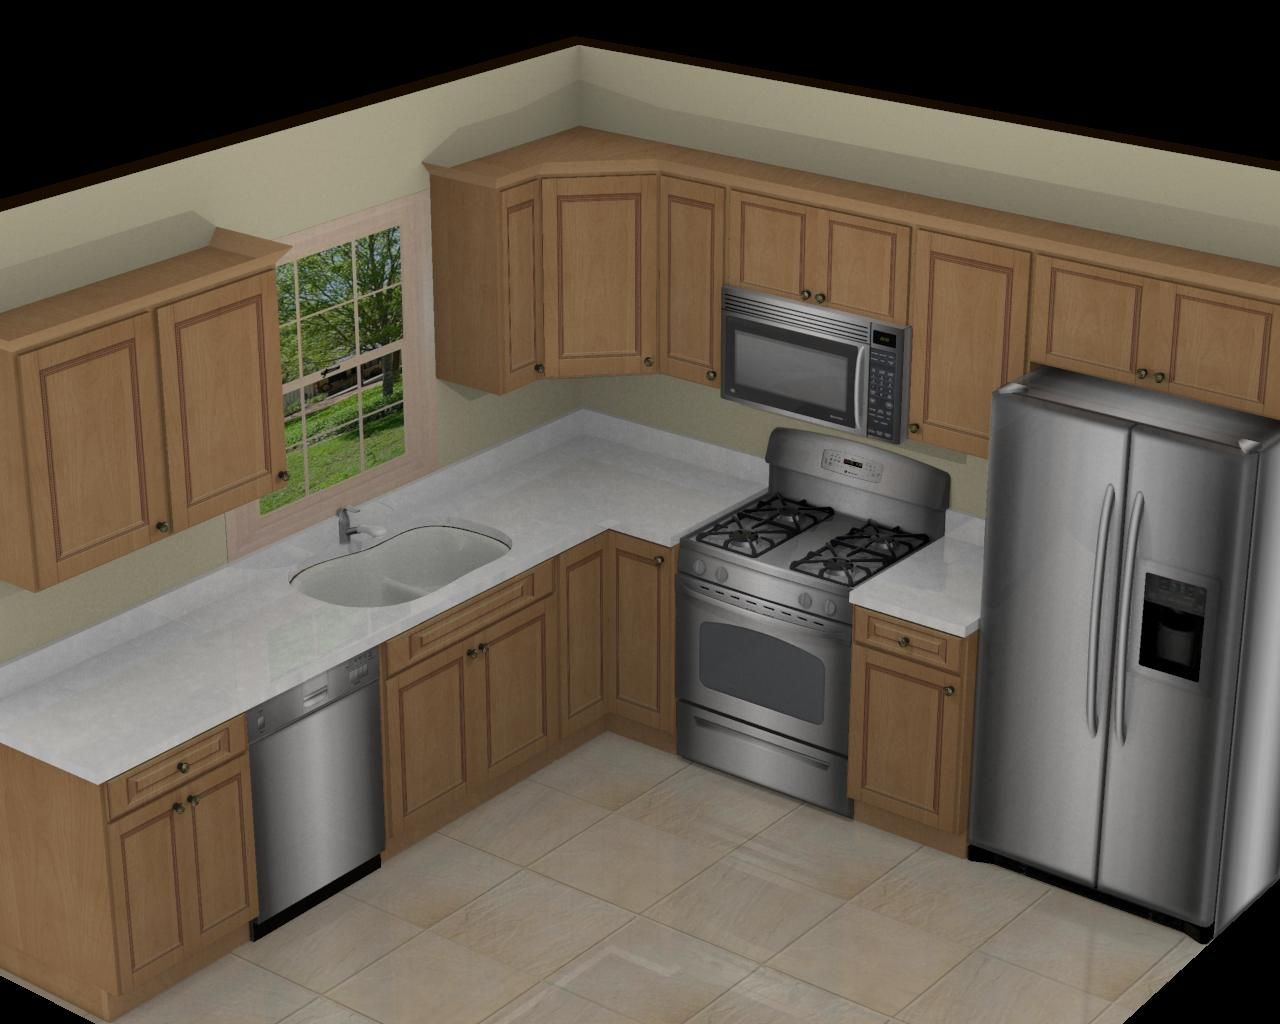 Kitchen Layout L Shaped With Island Comfy Home Design